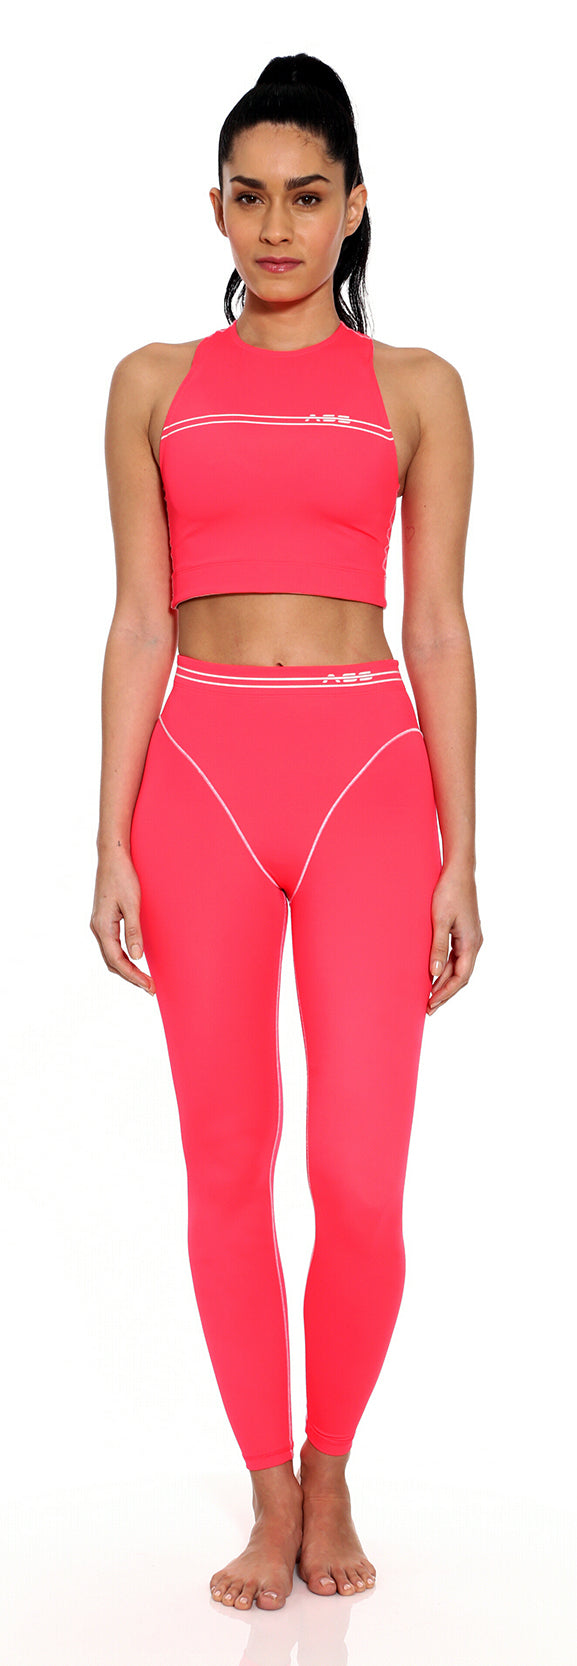 French Cut Legging - Watermelon